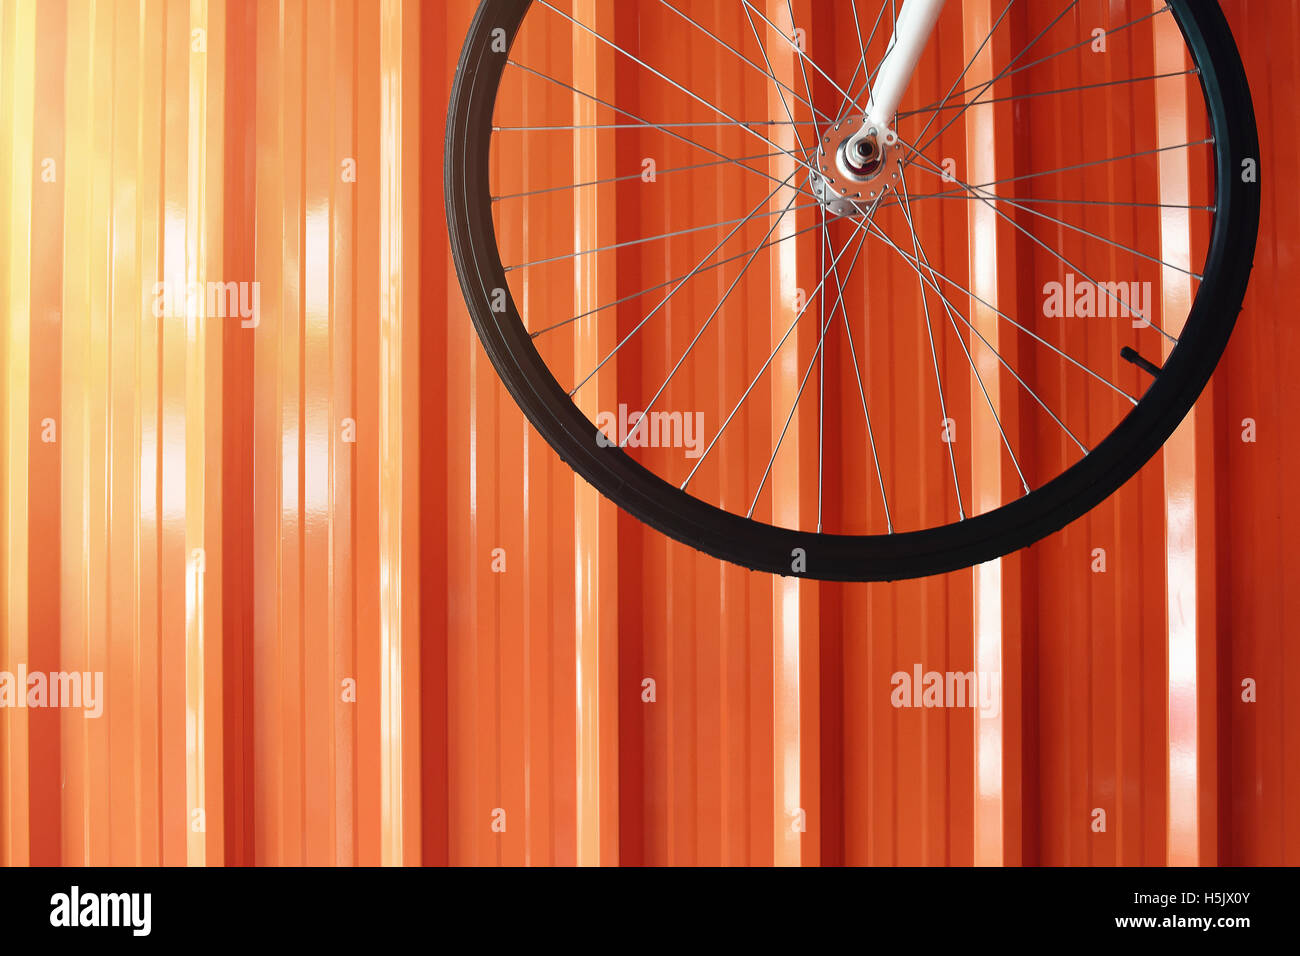 Roue de vélo accroché au mur le Garage Orange Photo Stock